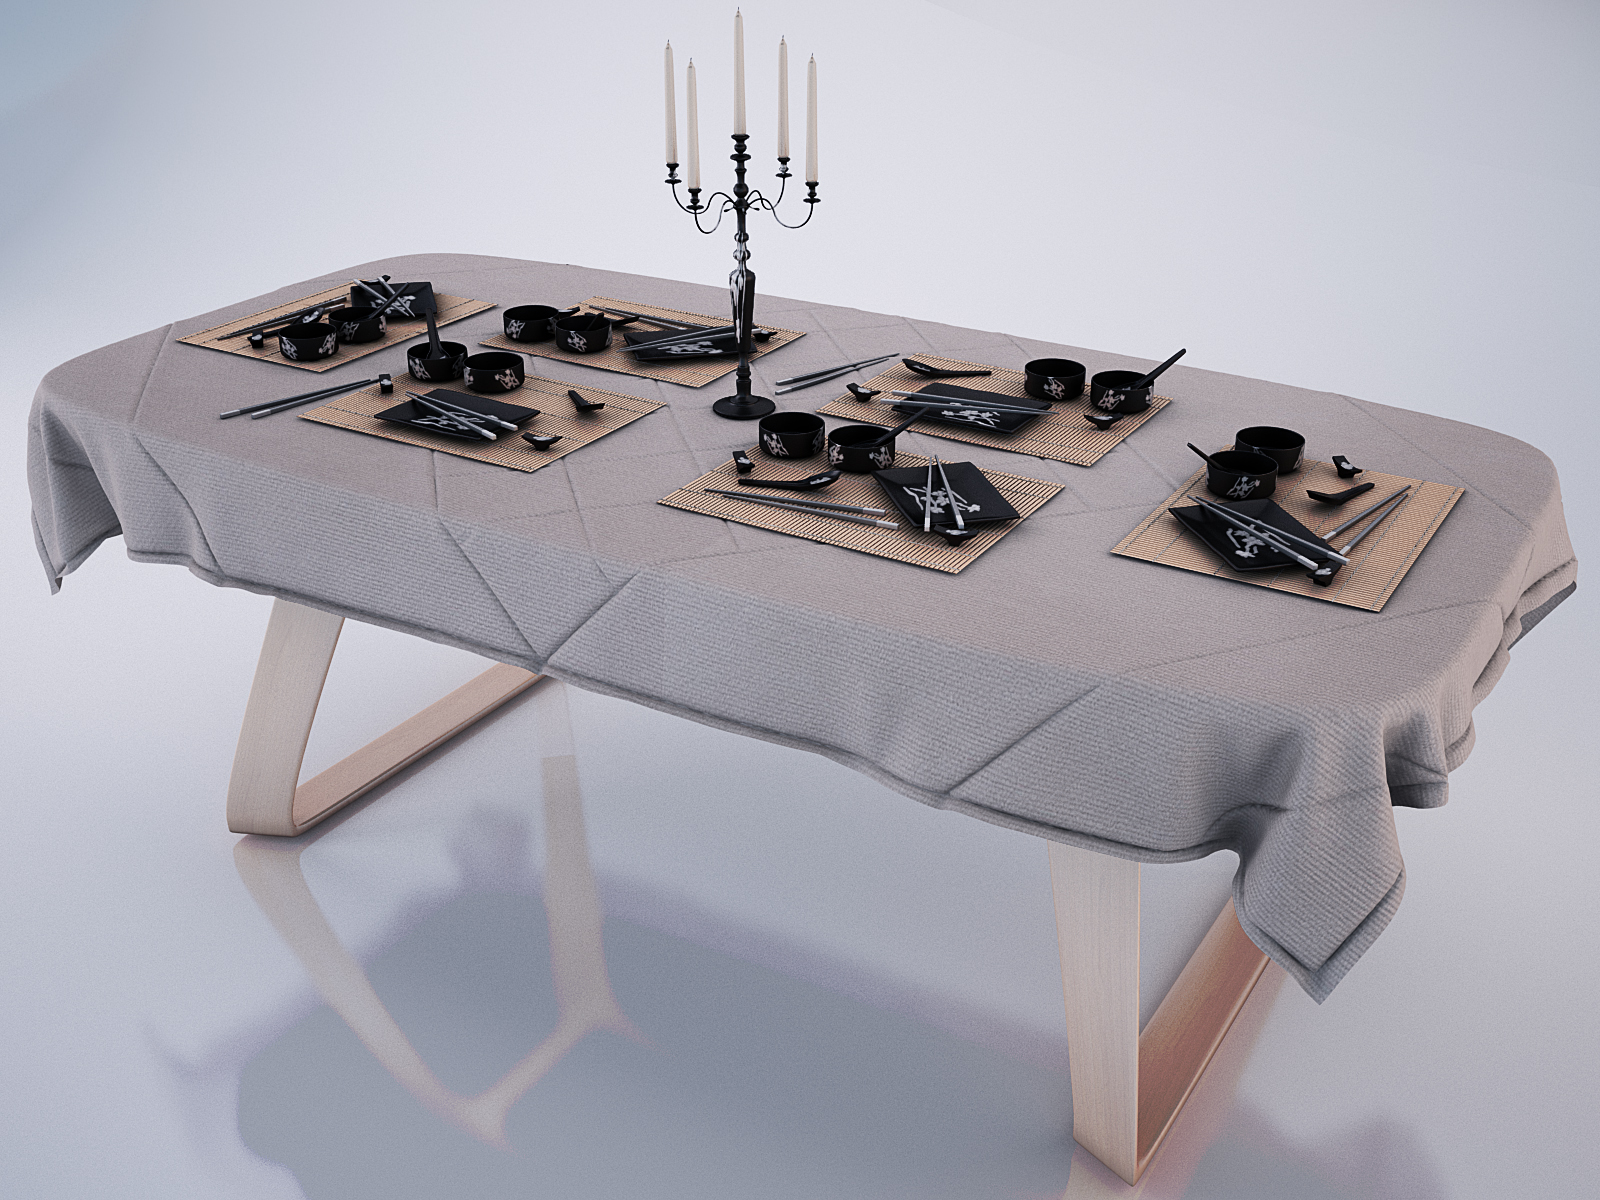 table modern brenta with tablecloth anh service d model max  . table modern brenta with tablecloth anh service d model max